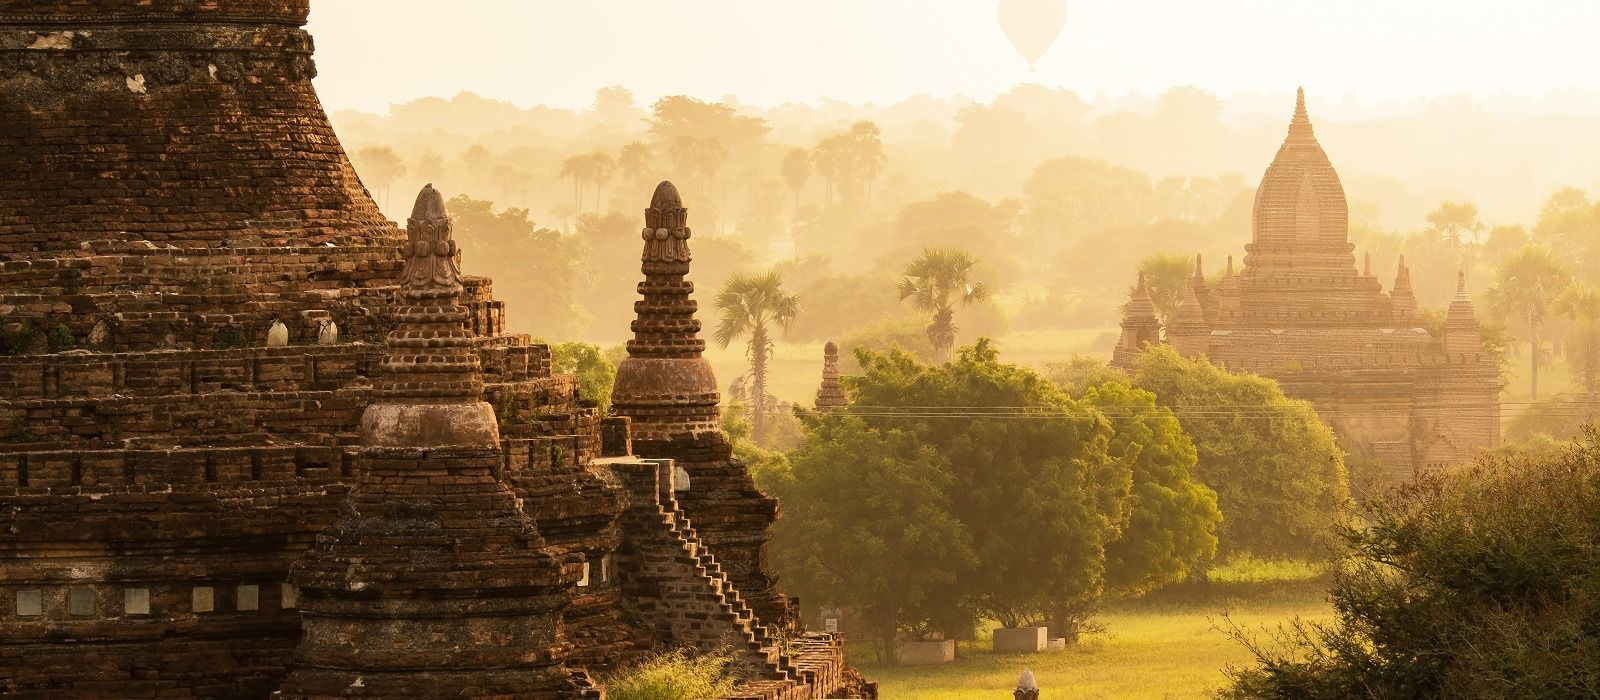 Myanmar for Beginners Tour Trip 2